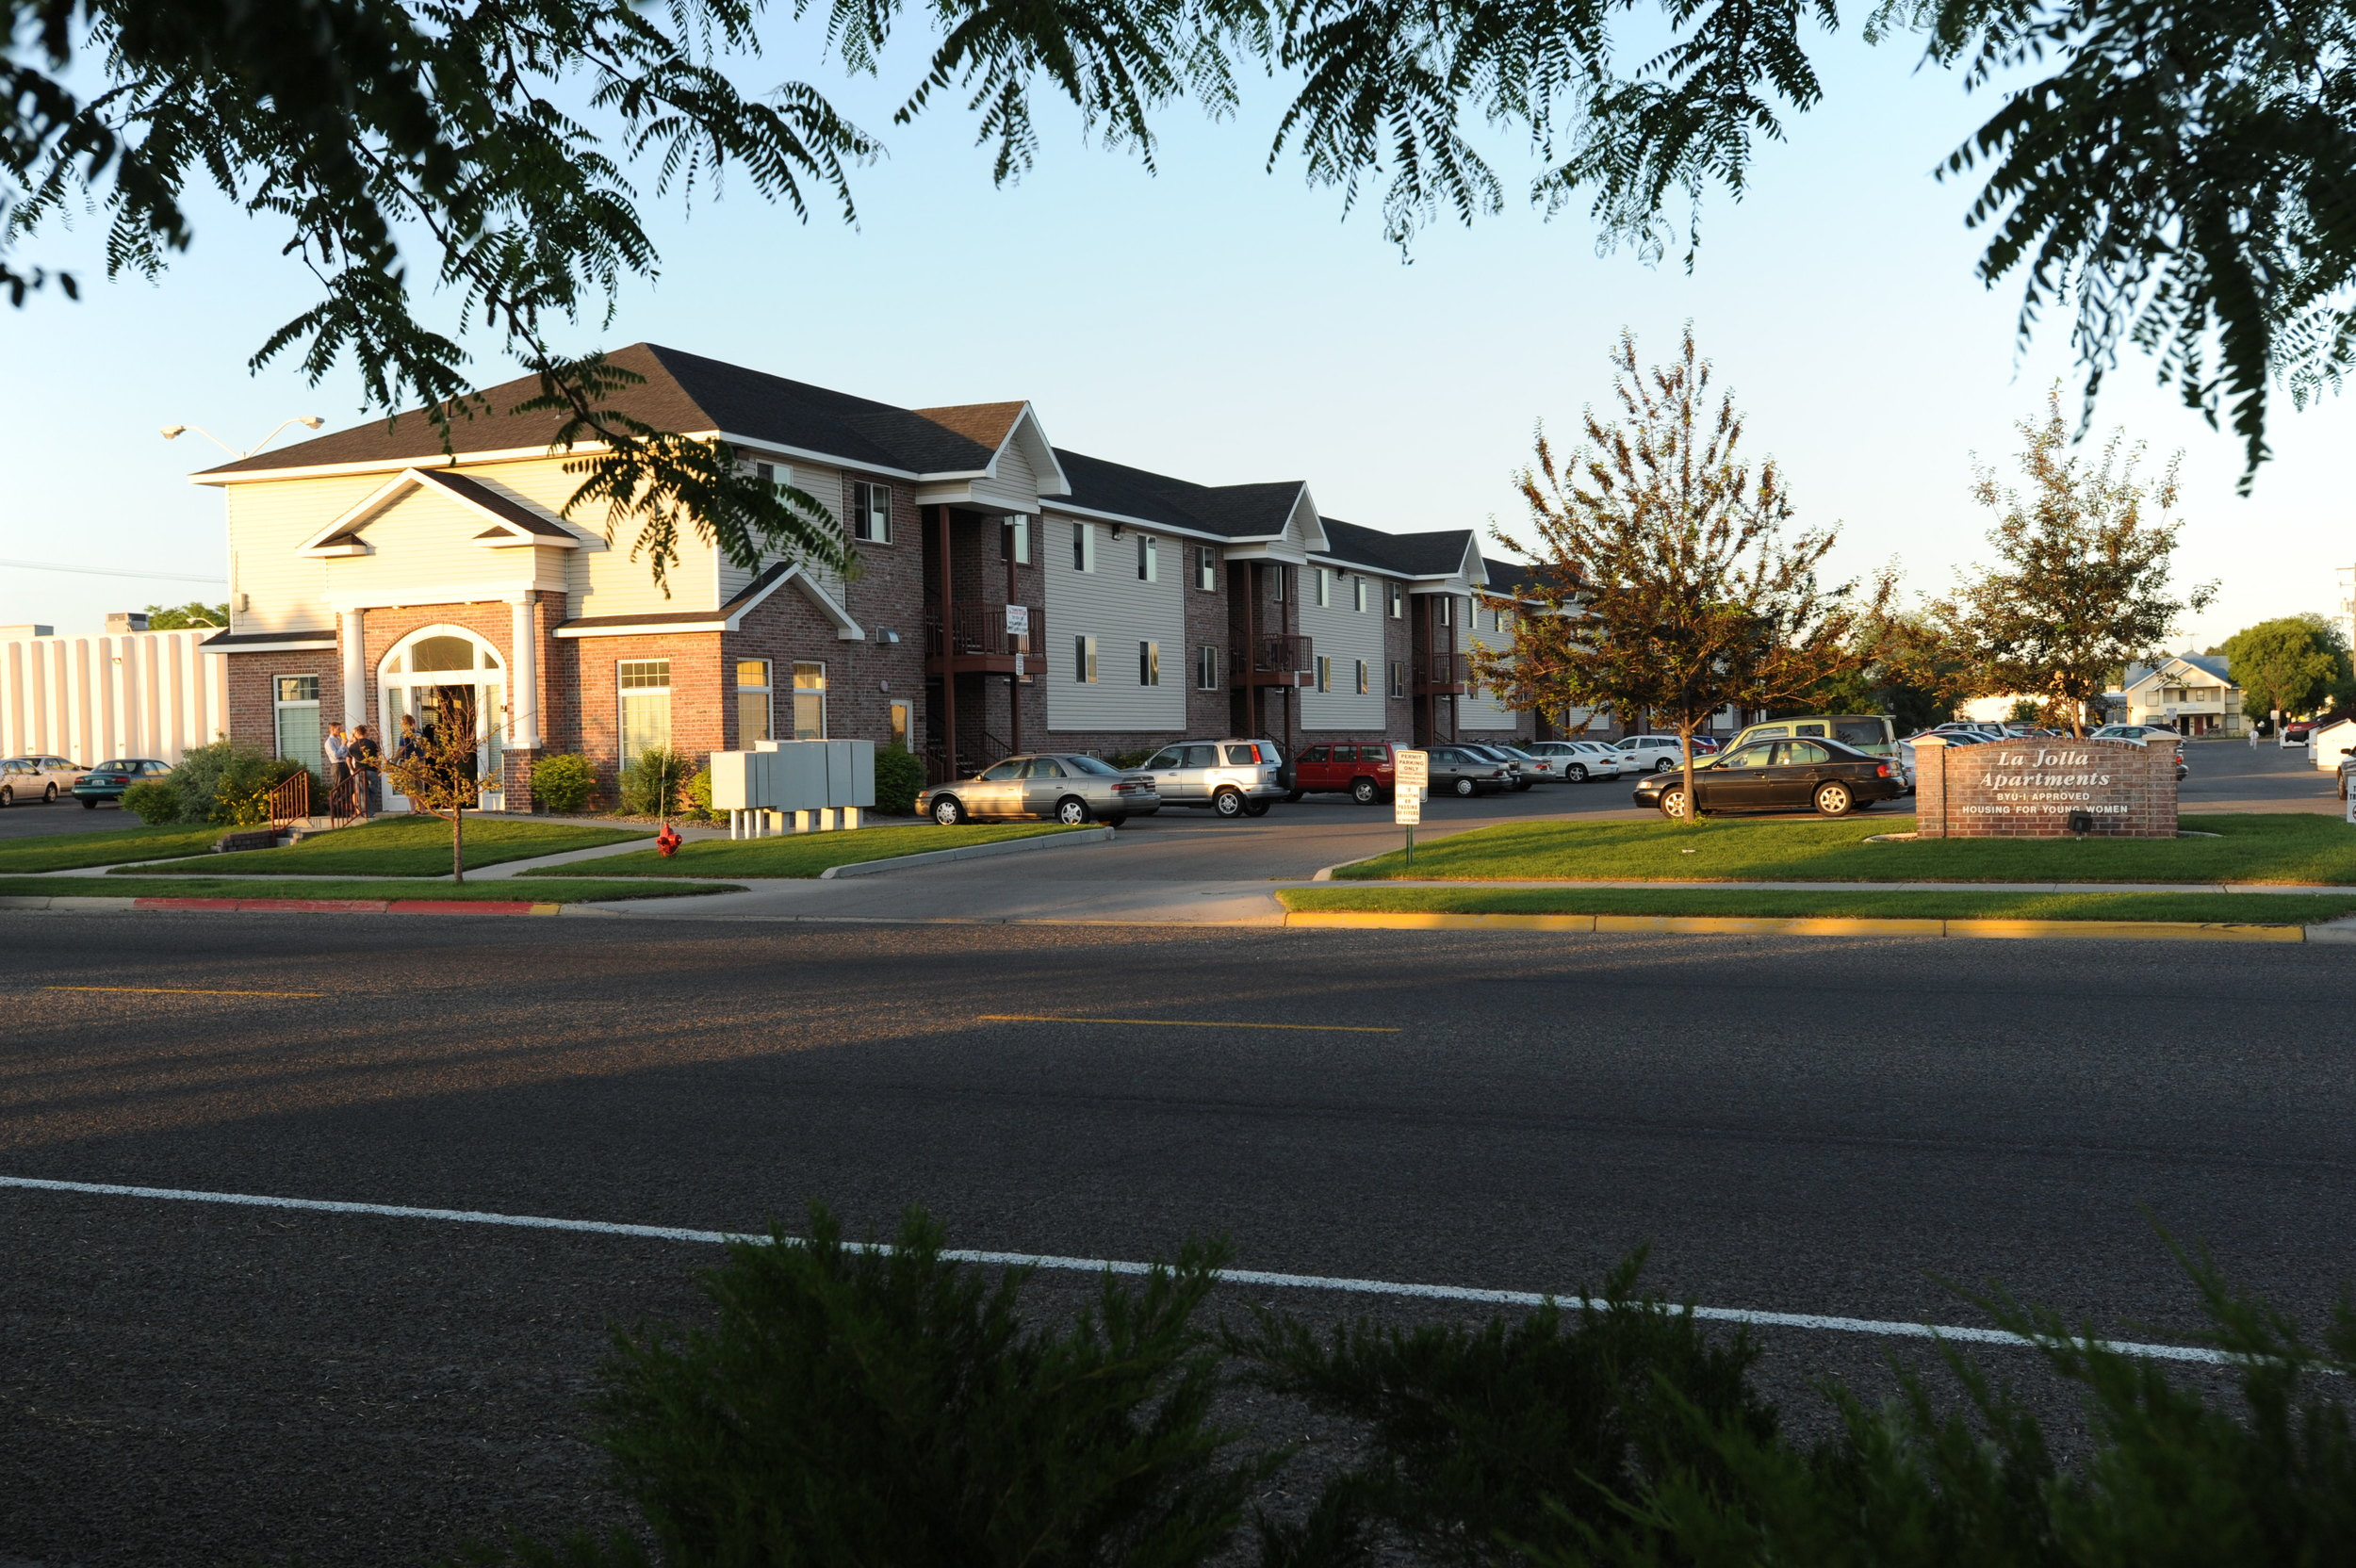 La Jolla Apartments - BYU Idaho Approved Housing for Men & Women